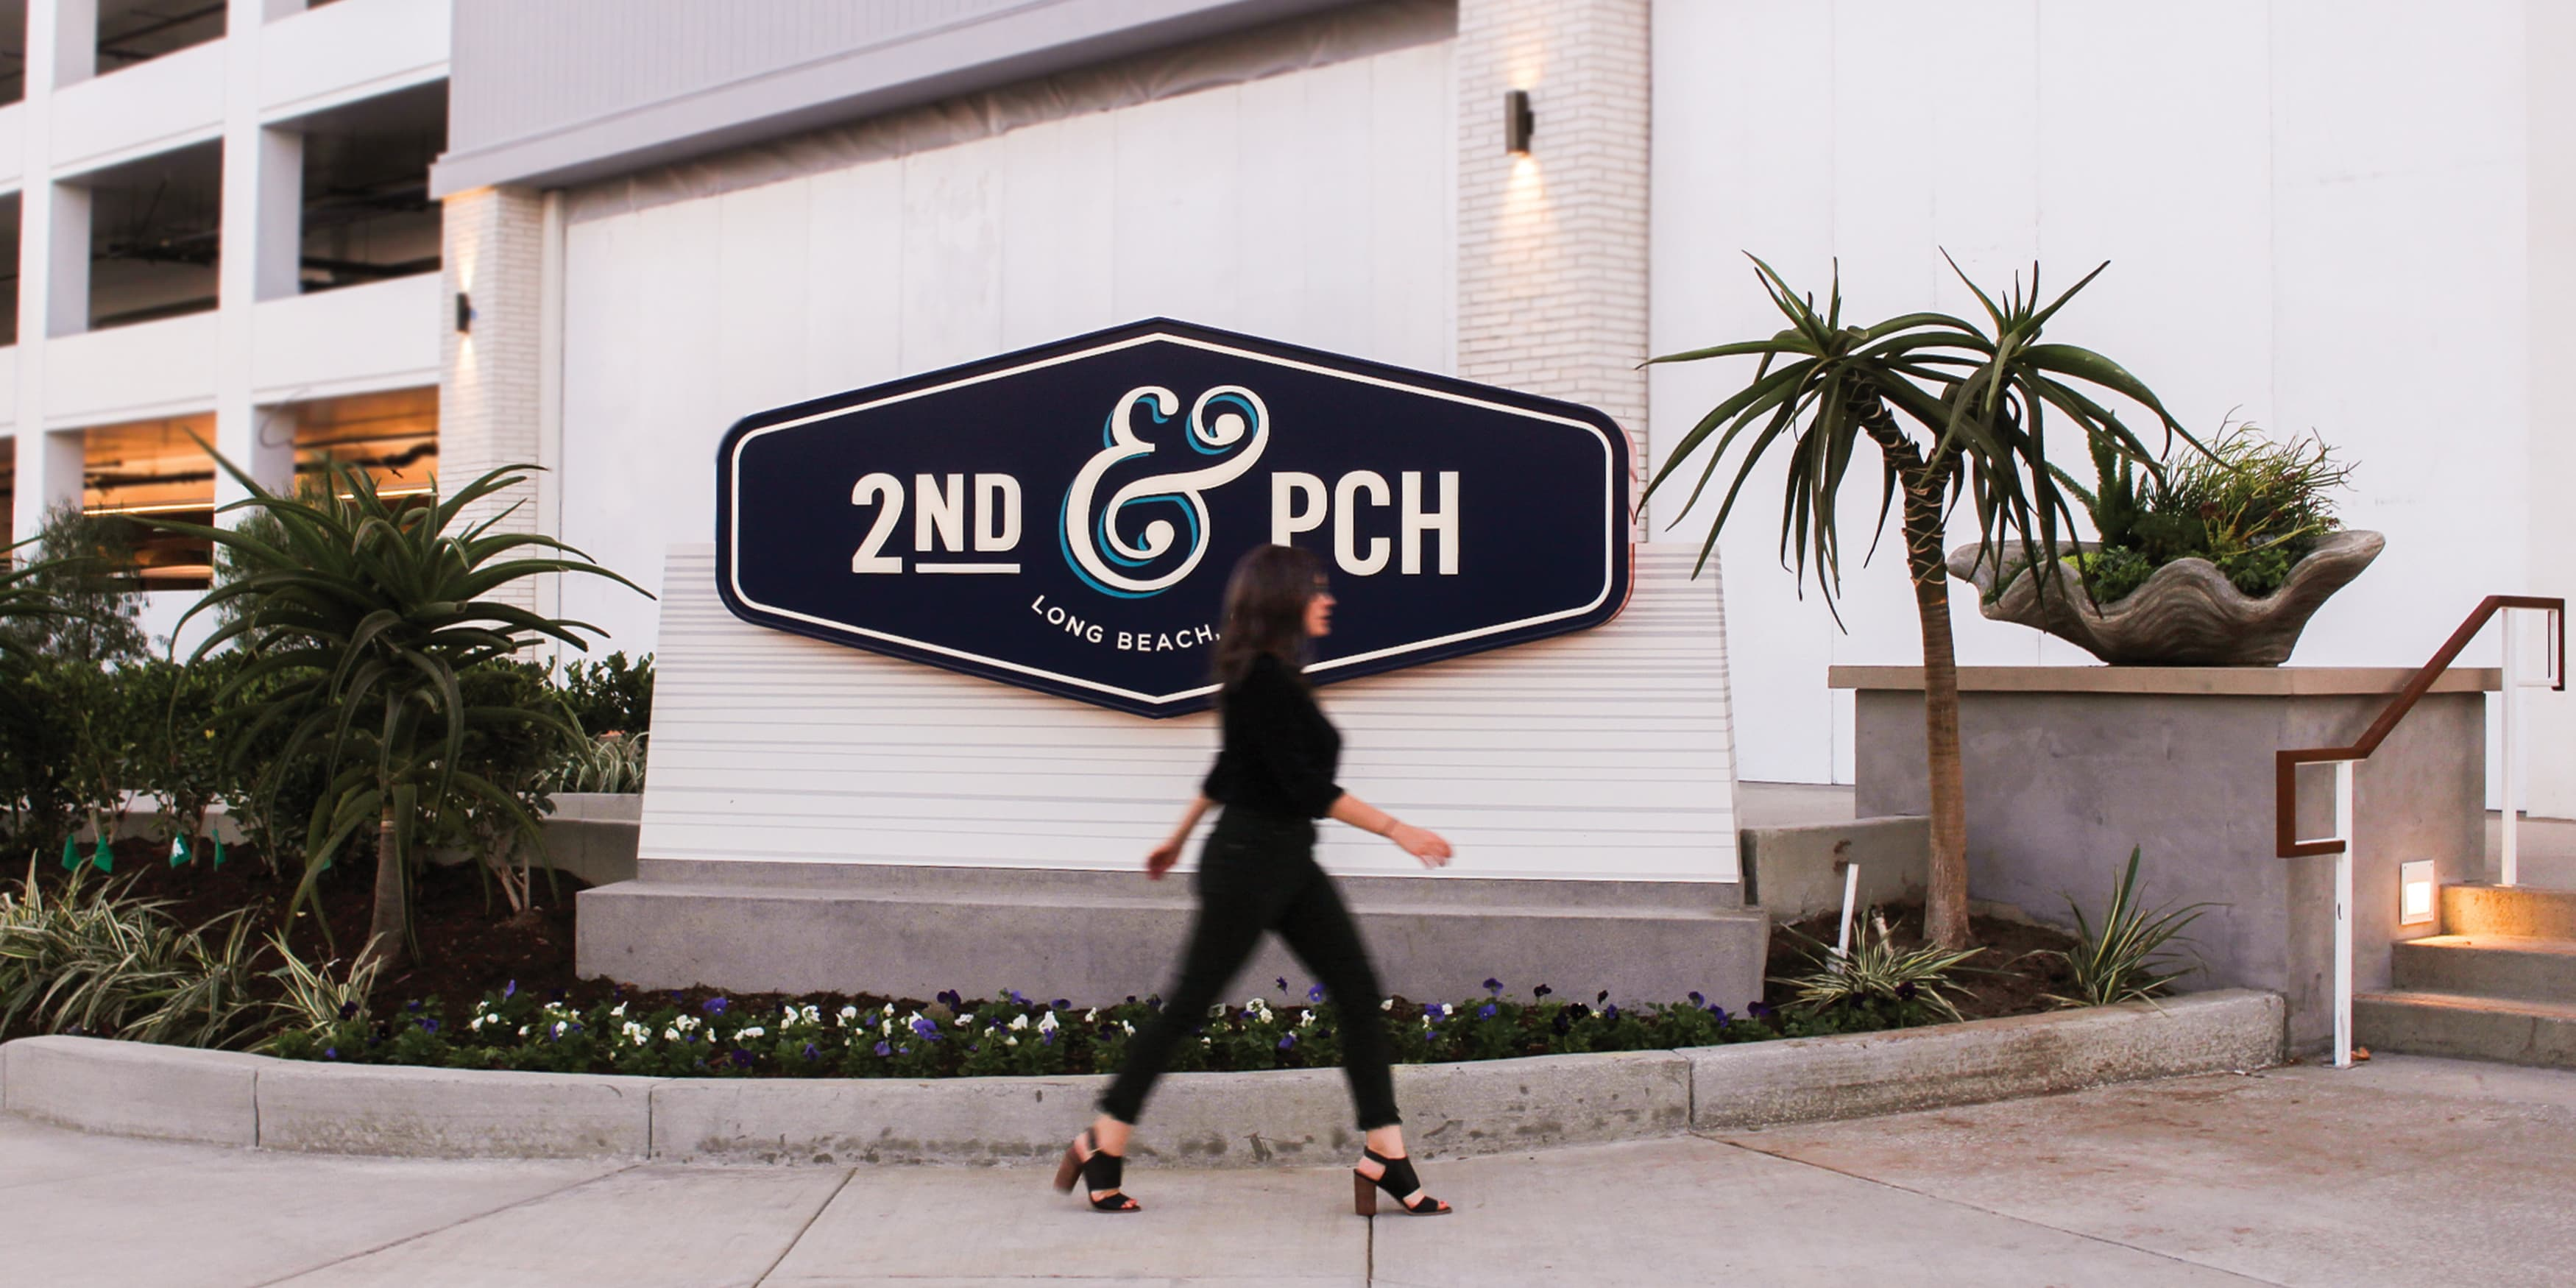 2nd & PCH, Long Beach, California, retail project identity monument